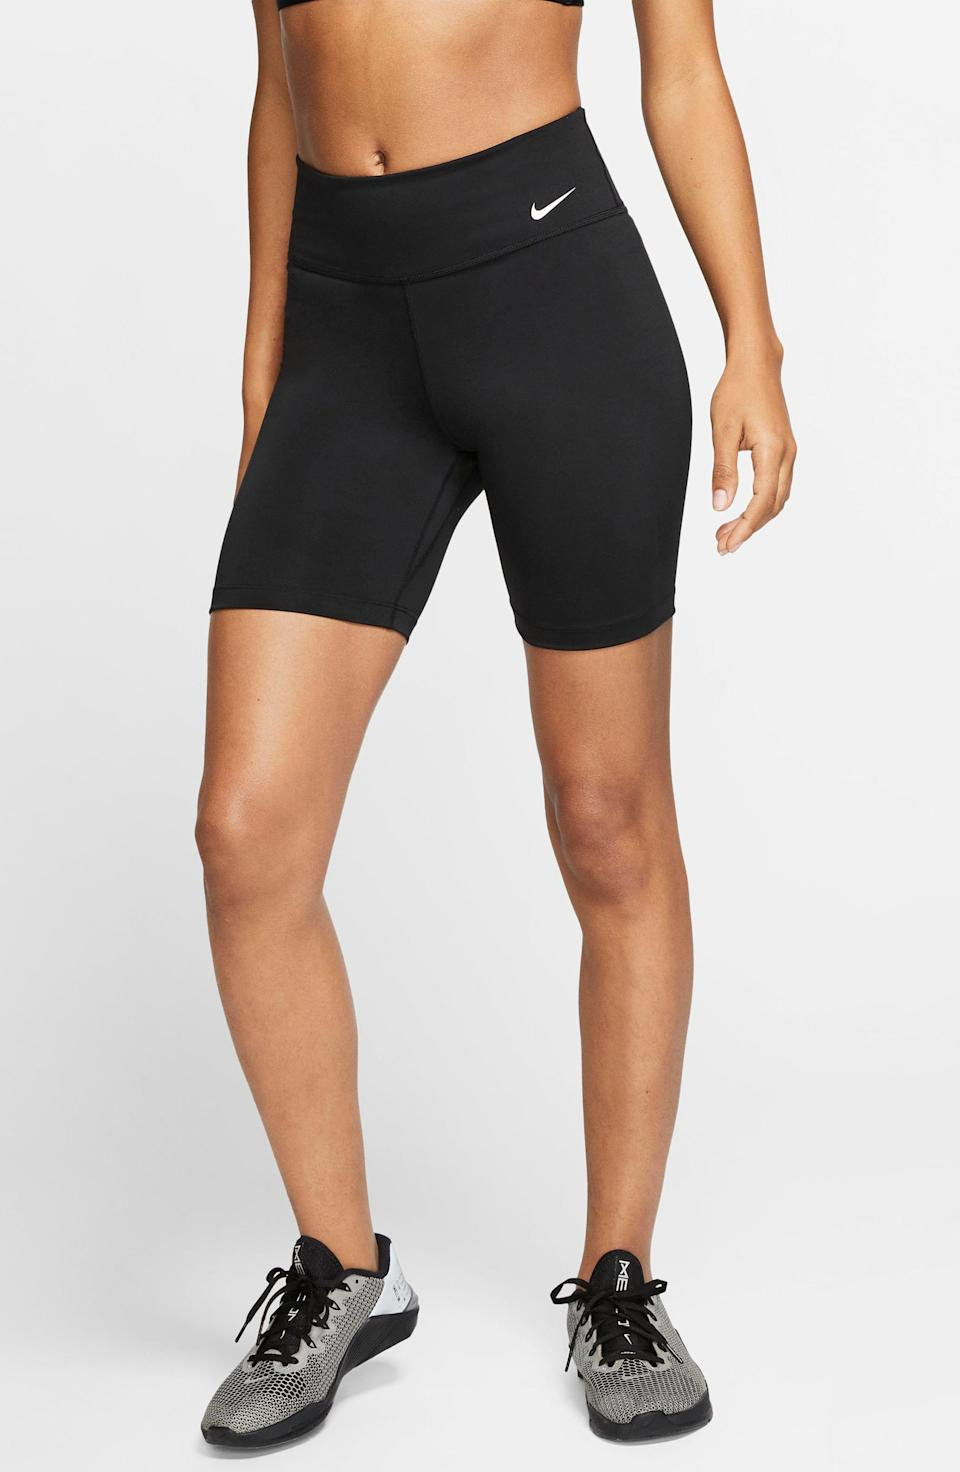 """<p><strong>NIKE</strong></p><p>nordstrom.com</p><p><a href=""""https://go.redirectingat.com?id=74968X1596630&url=https%3A%2F%2Fwww.nordstrom.com%2Fs%2Fnike-one-dri-fit-shorts%2F5449628&sref=https%3A%2F%2Fwww.womenshealthmag.com%2Flife%2Fg33415769%2Fnordstrom-anniversay-sale-preview%2F"""" rel=""""nofollow noopener"""" target=""""_blank"""" data-ylk=""""slk:Shop Now"""" class=""""link rapid-noclick-resp"""">Shop Now</a></p><p>Stock up on some more activewear, like these Nike Dri-FIT shorts, which are so discounted you can't even see the price until you add them to your shopping cart. </p>"""